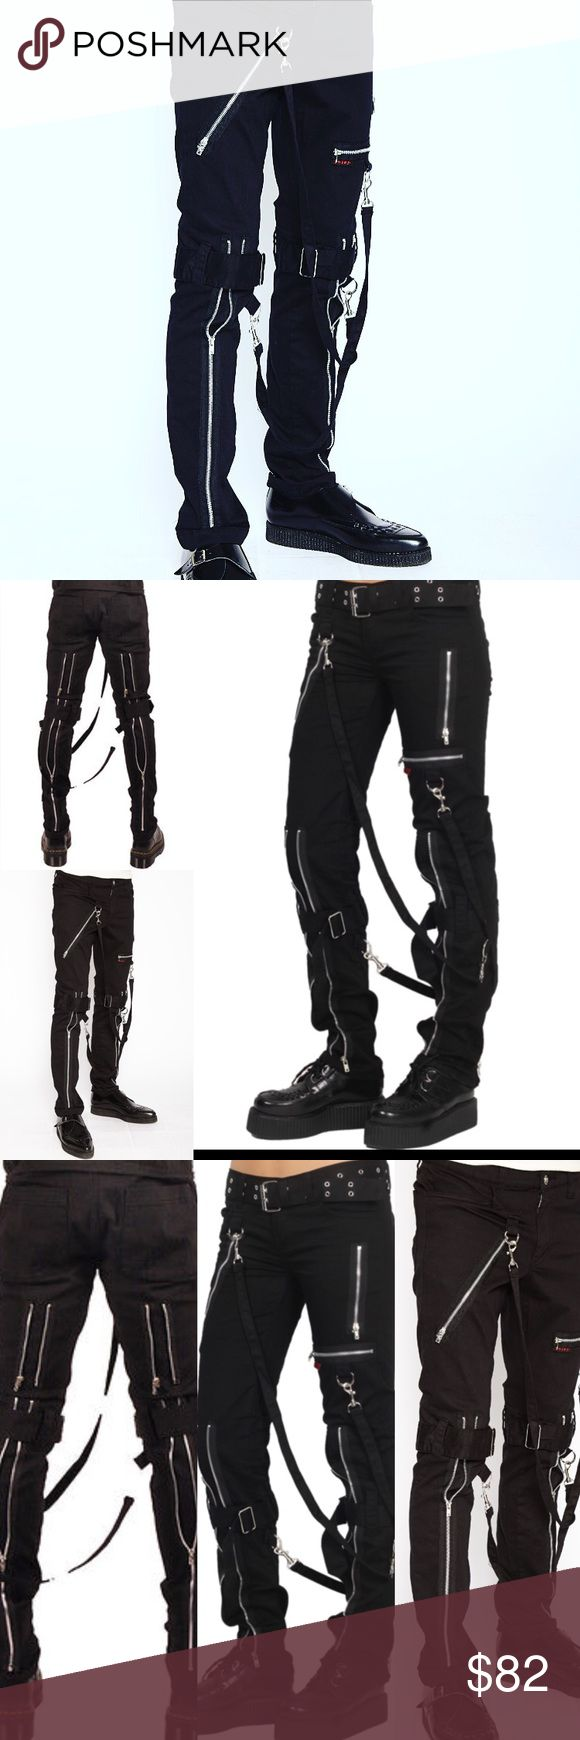 Men's Bondage Pants ❤️#Bondage #Strap #Industrial #obsidianclothingwear feature removable #bondage #straps and #zipper details. #Pant legs can be #zipped for a change in fit, topped off with a zip #fly and button closure. #metal#goth#meh#evil#club − 97% Cotton, 3% Spandex #club#evil#goth#industrial#gothic#men#fashion www.obsidianclothing.com Trippnyc  Pants Straight Leg